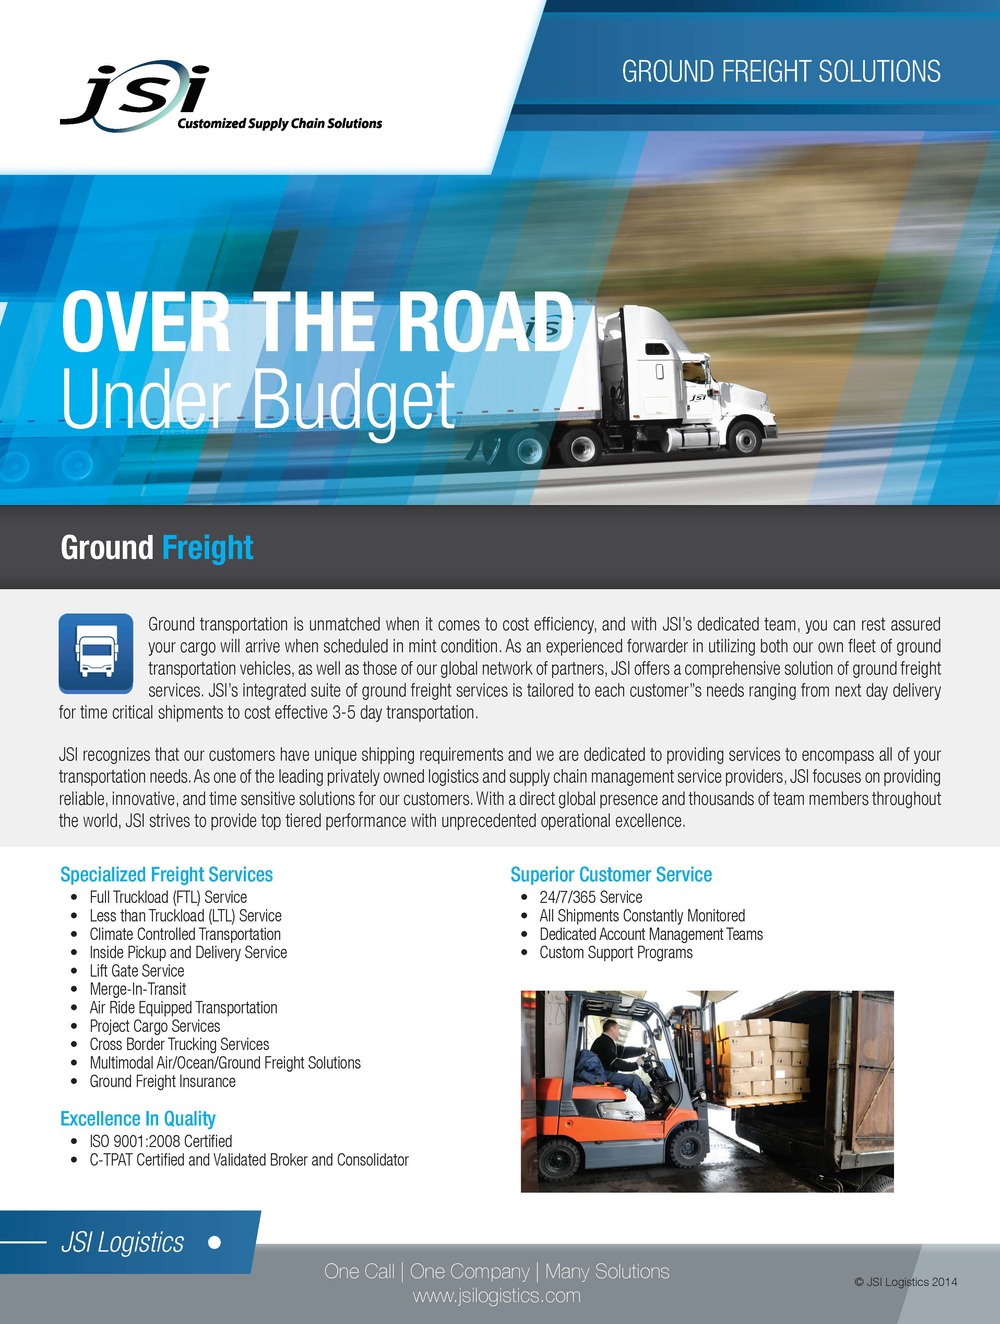 Ground Freight Services Flyer